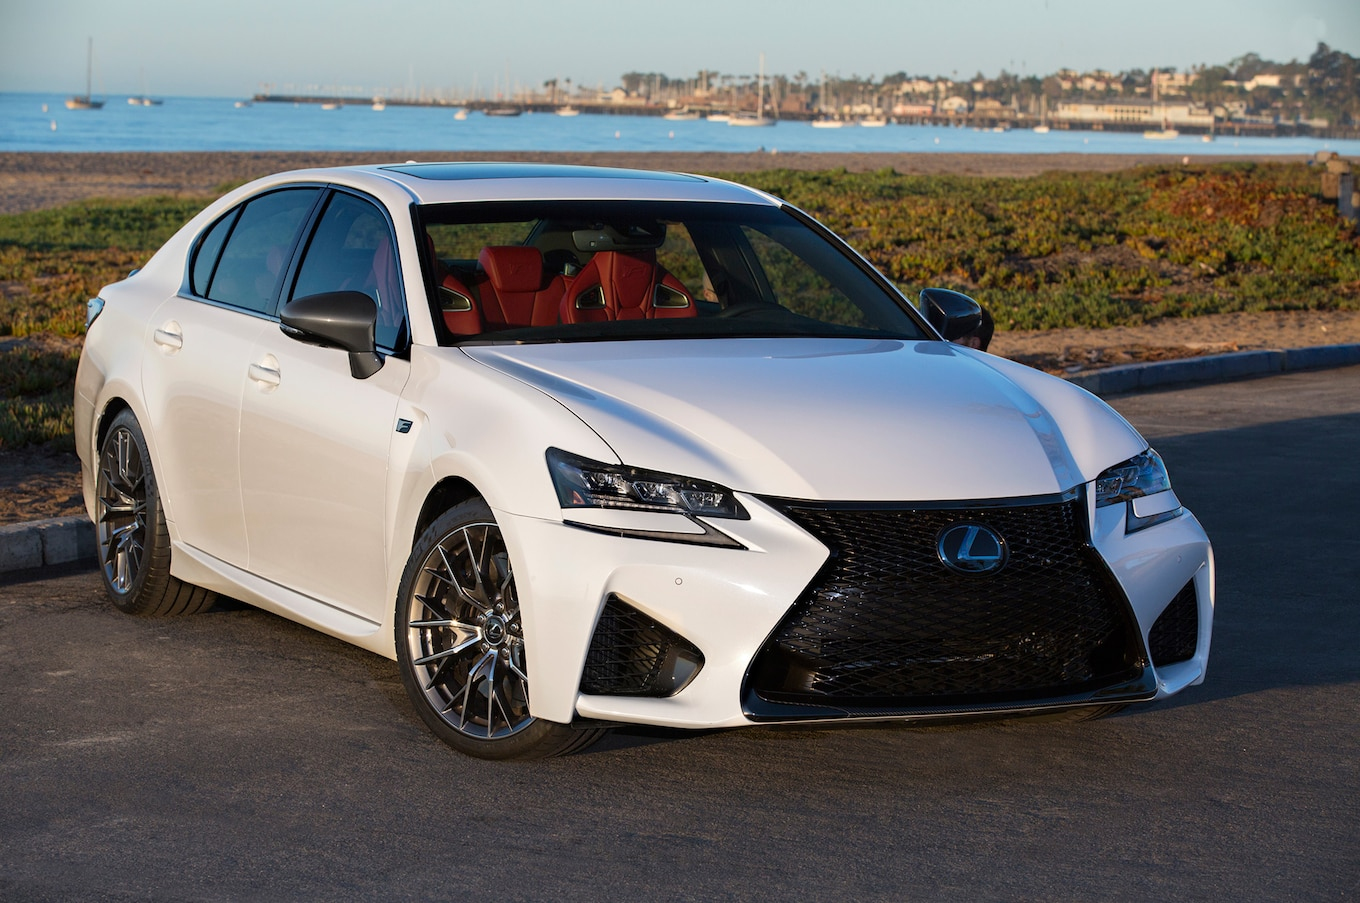 2017 Lexus GS F Owners Manual